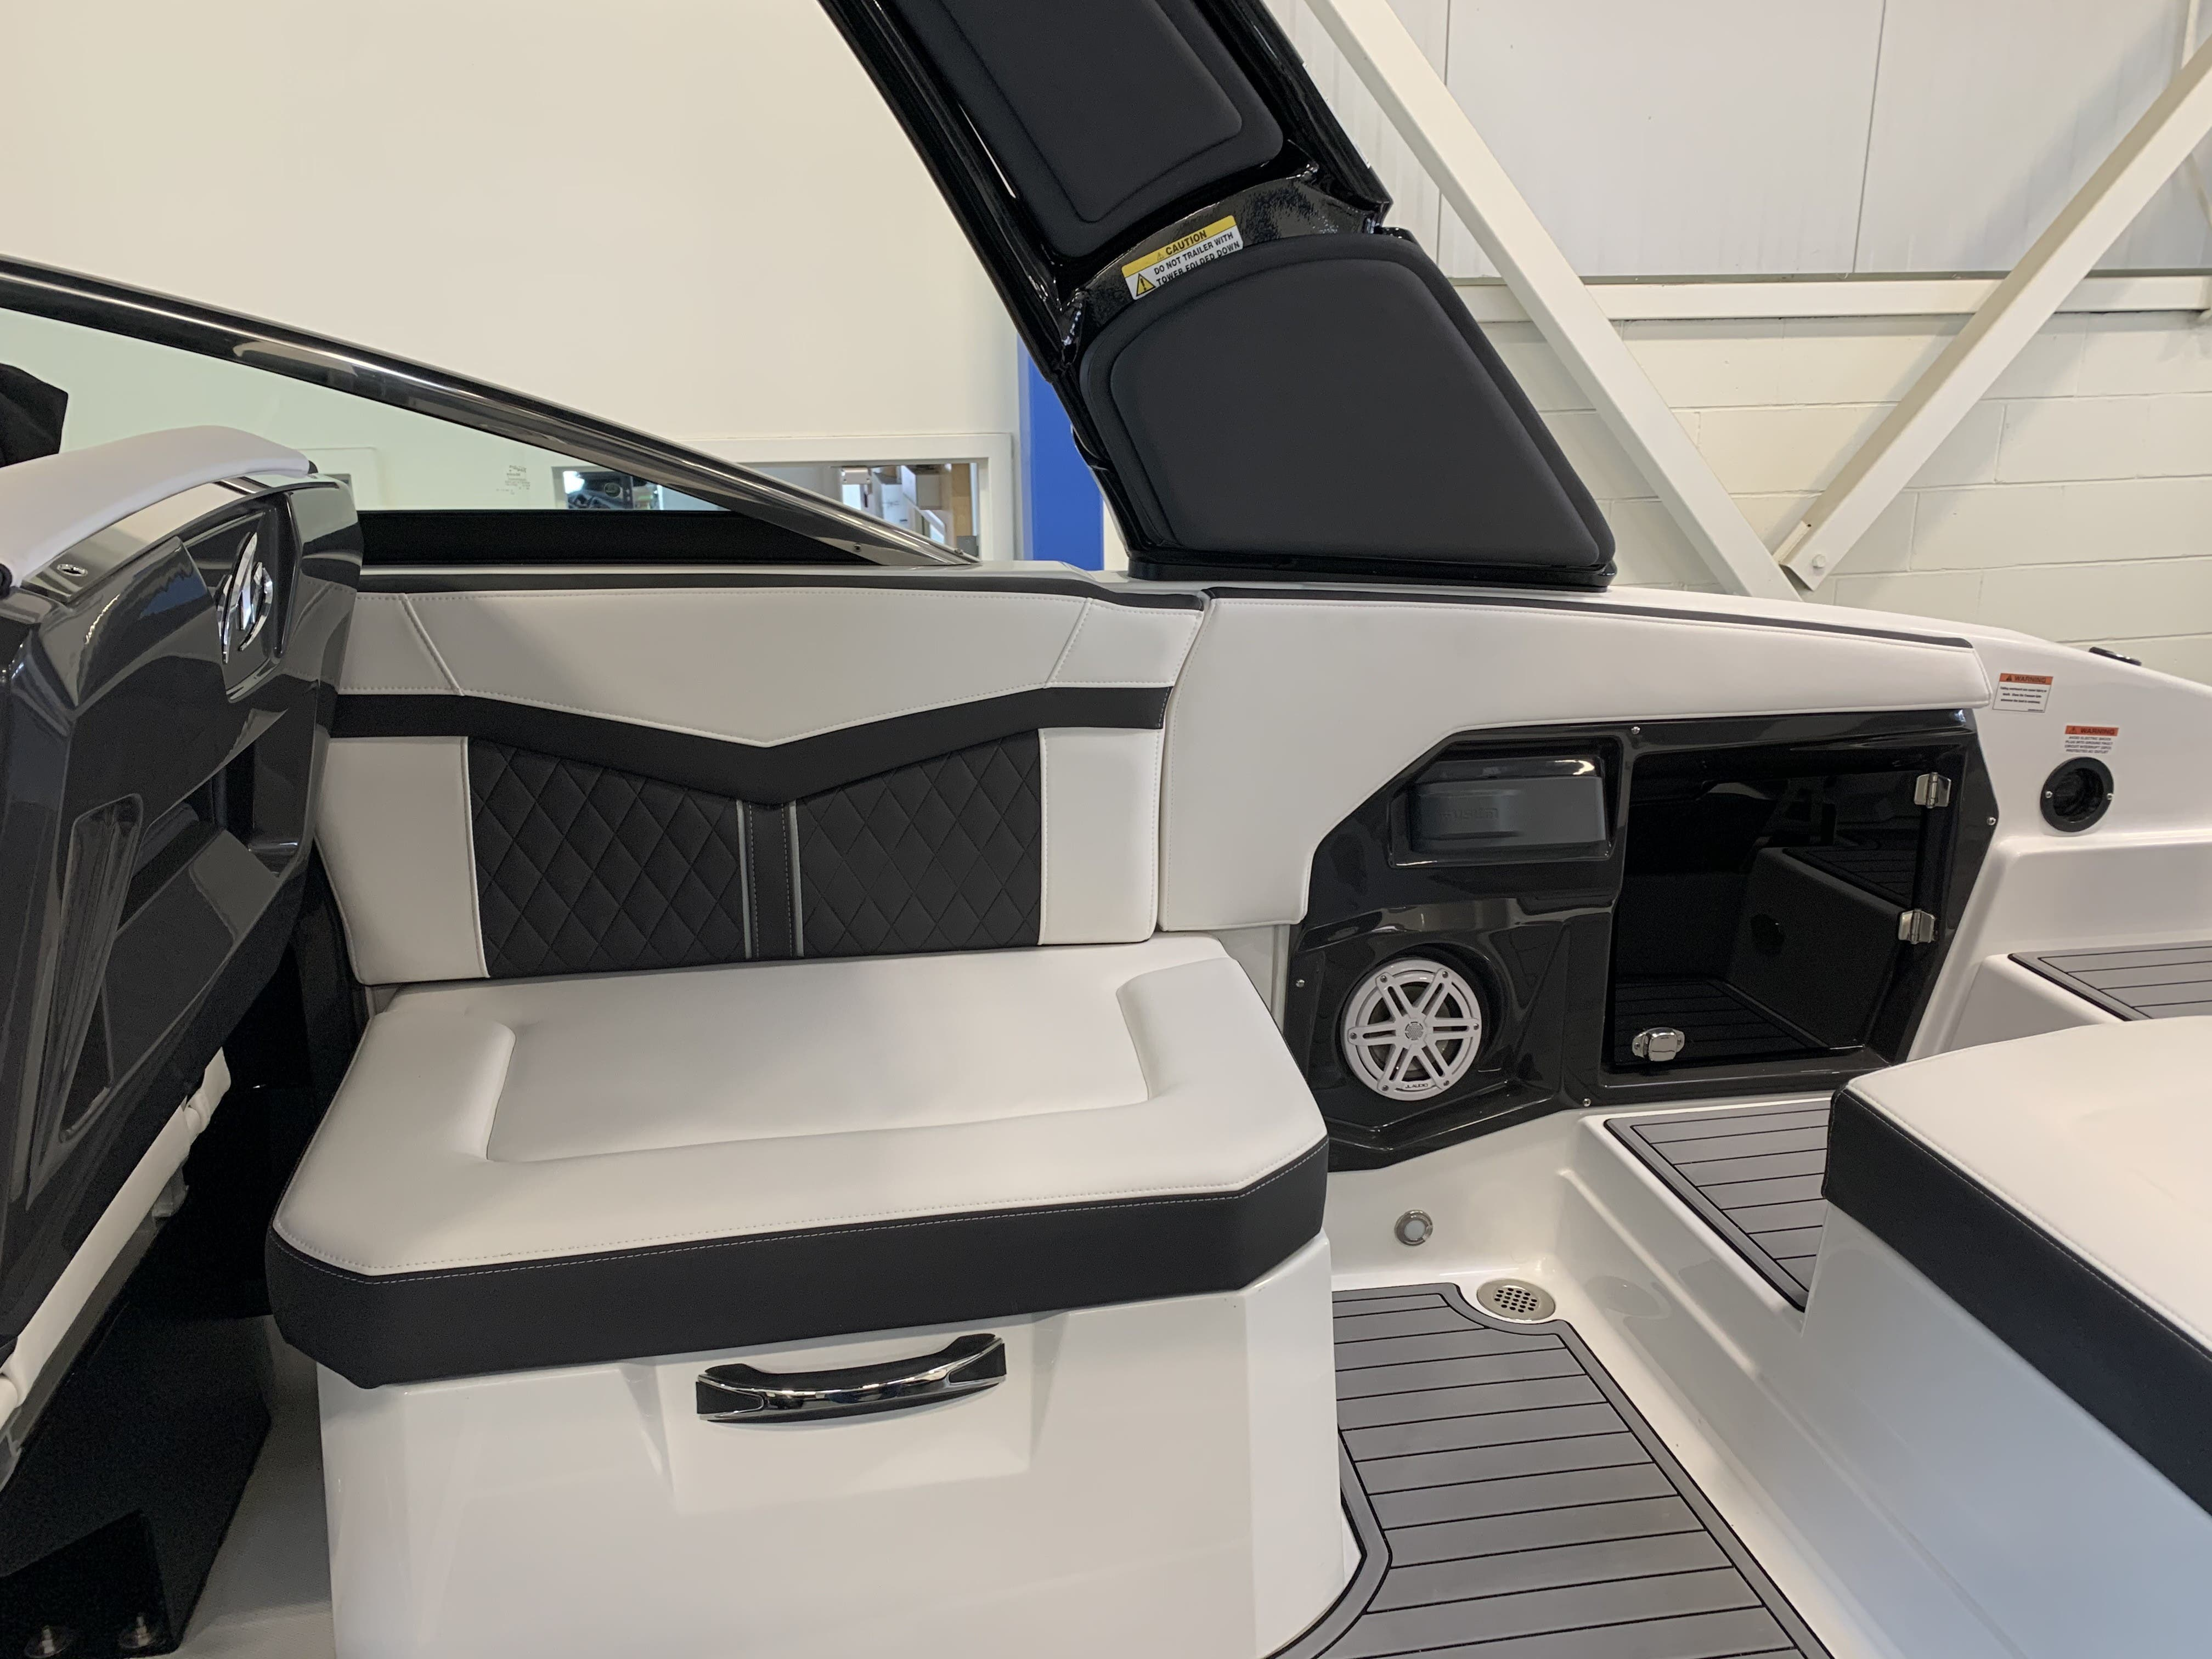 2022 Monterey boat for sale, model of the boat is 278ss & Image # 12 of 18